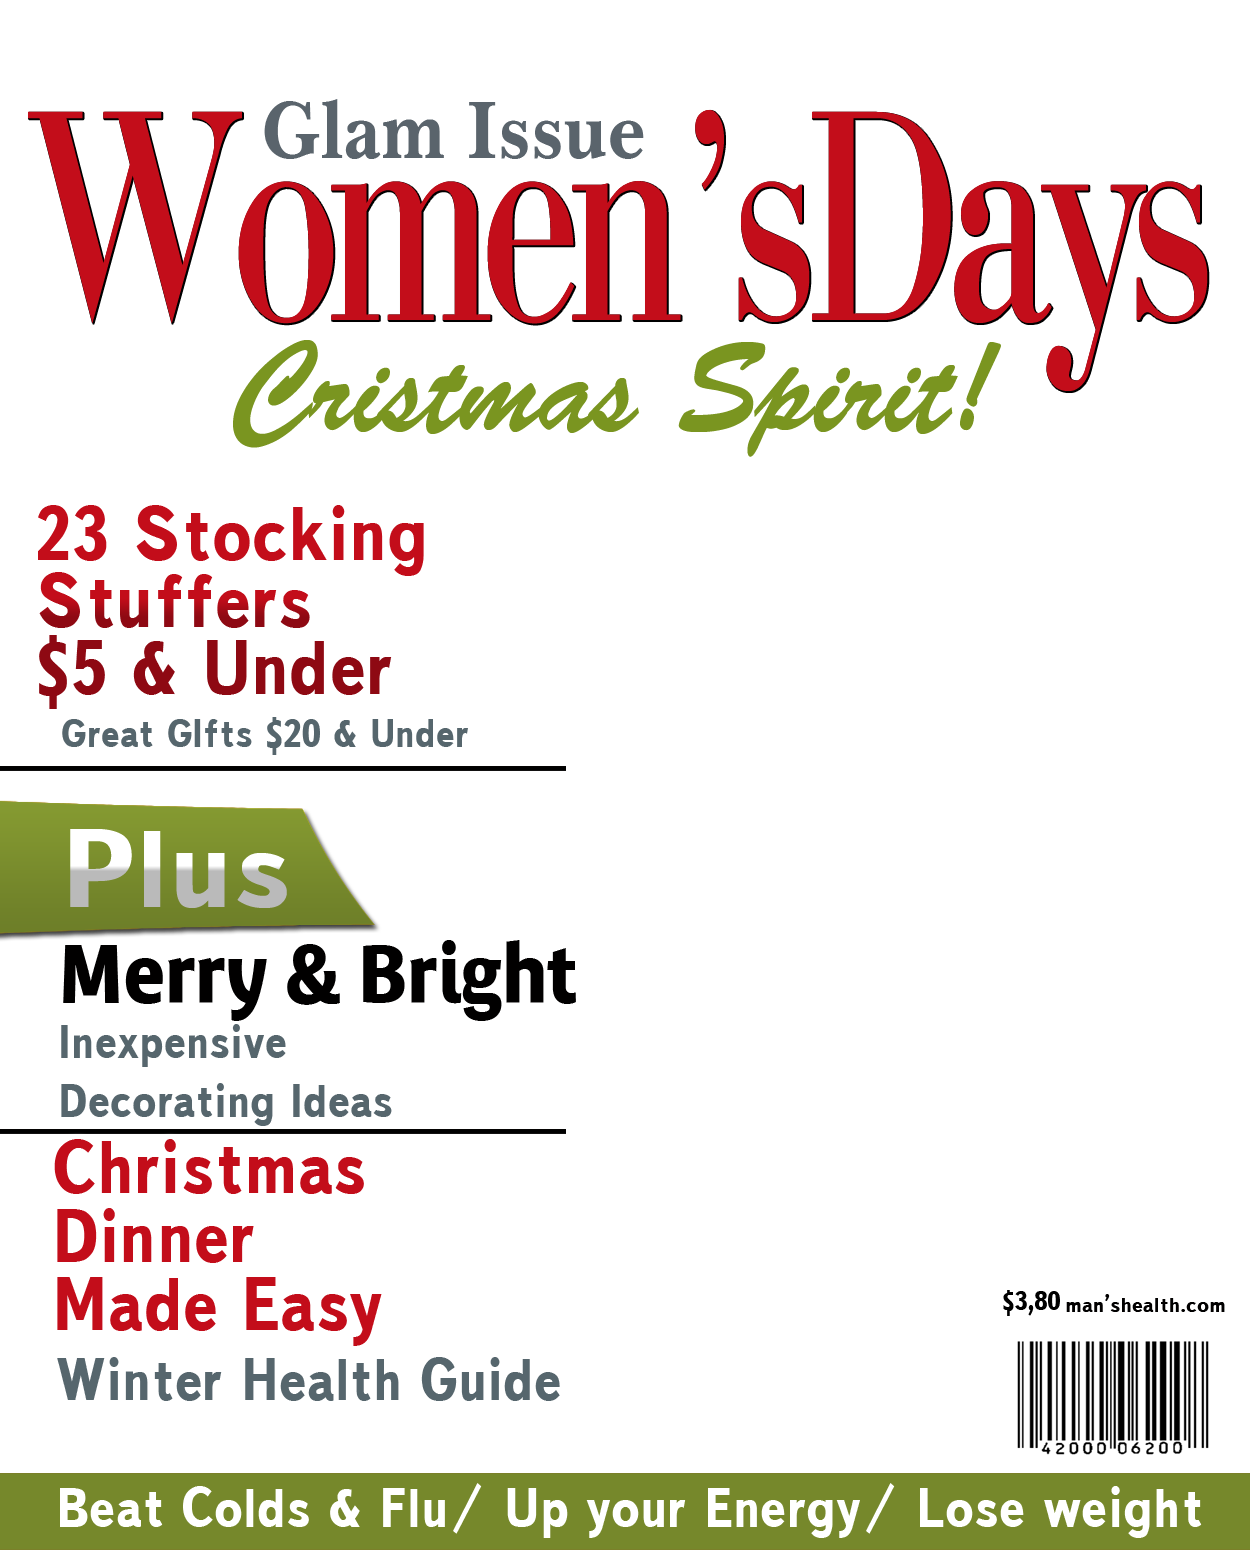 Png magazine covers transparent magazine coversg images pluspng inmagazinescom fake magazine cover generator png magazine covers pronofoot35fo Choice Image